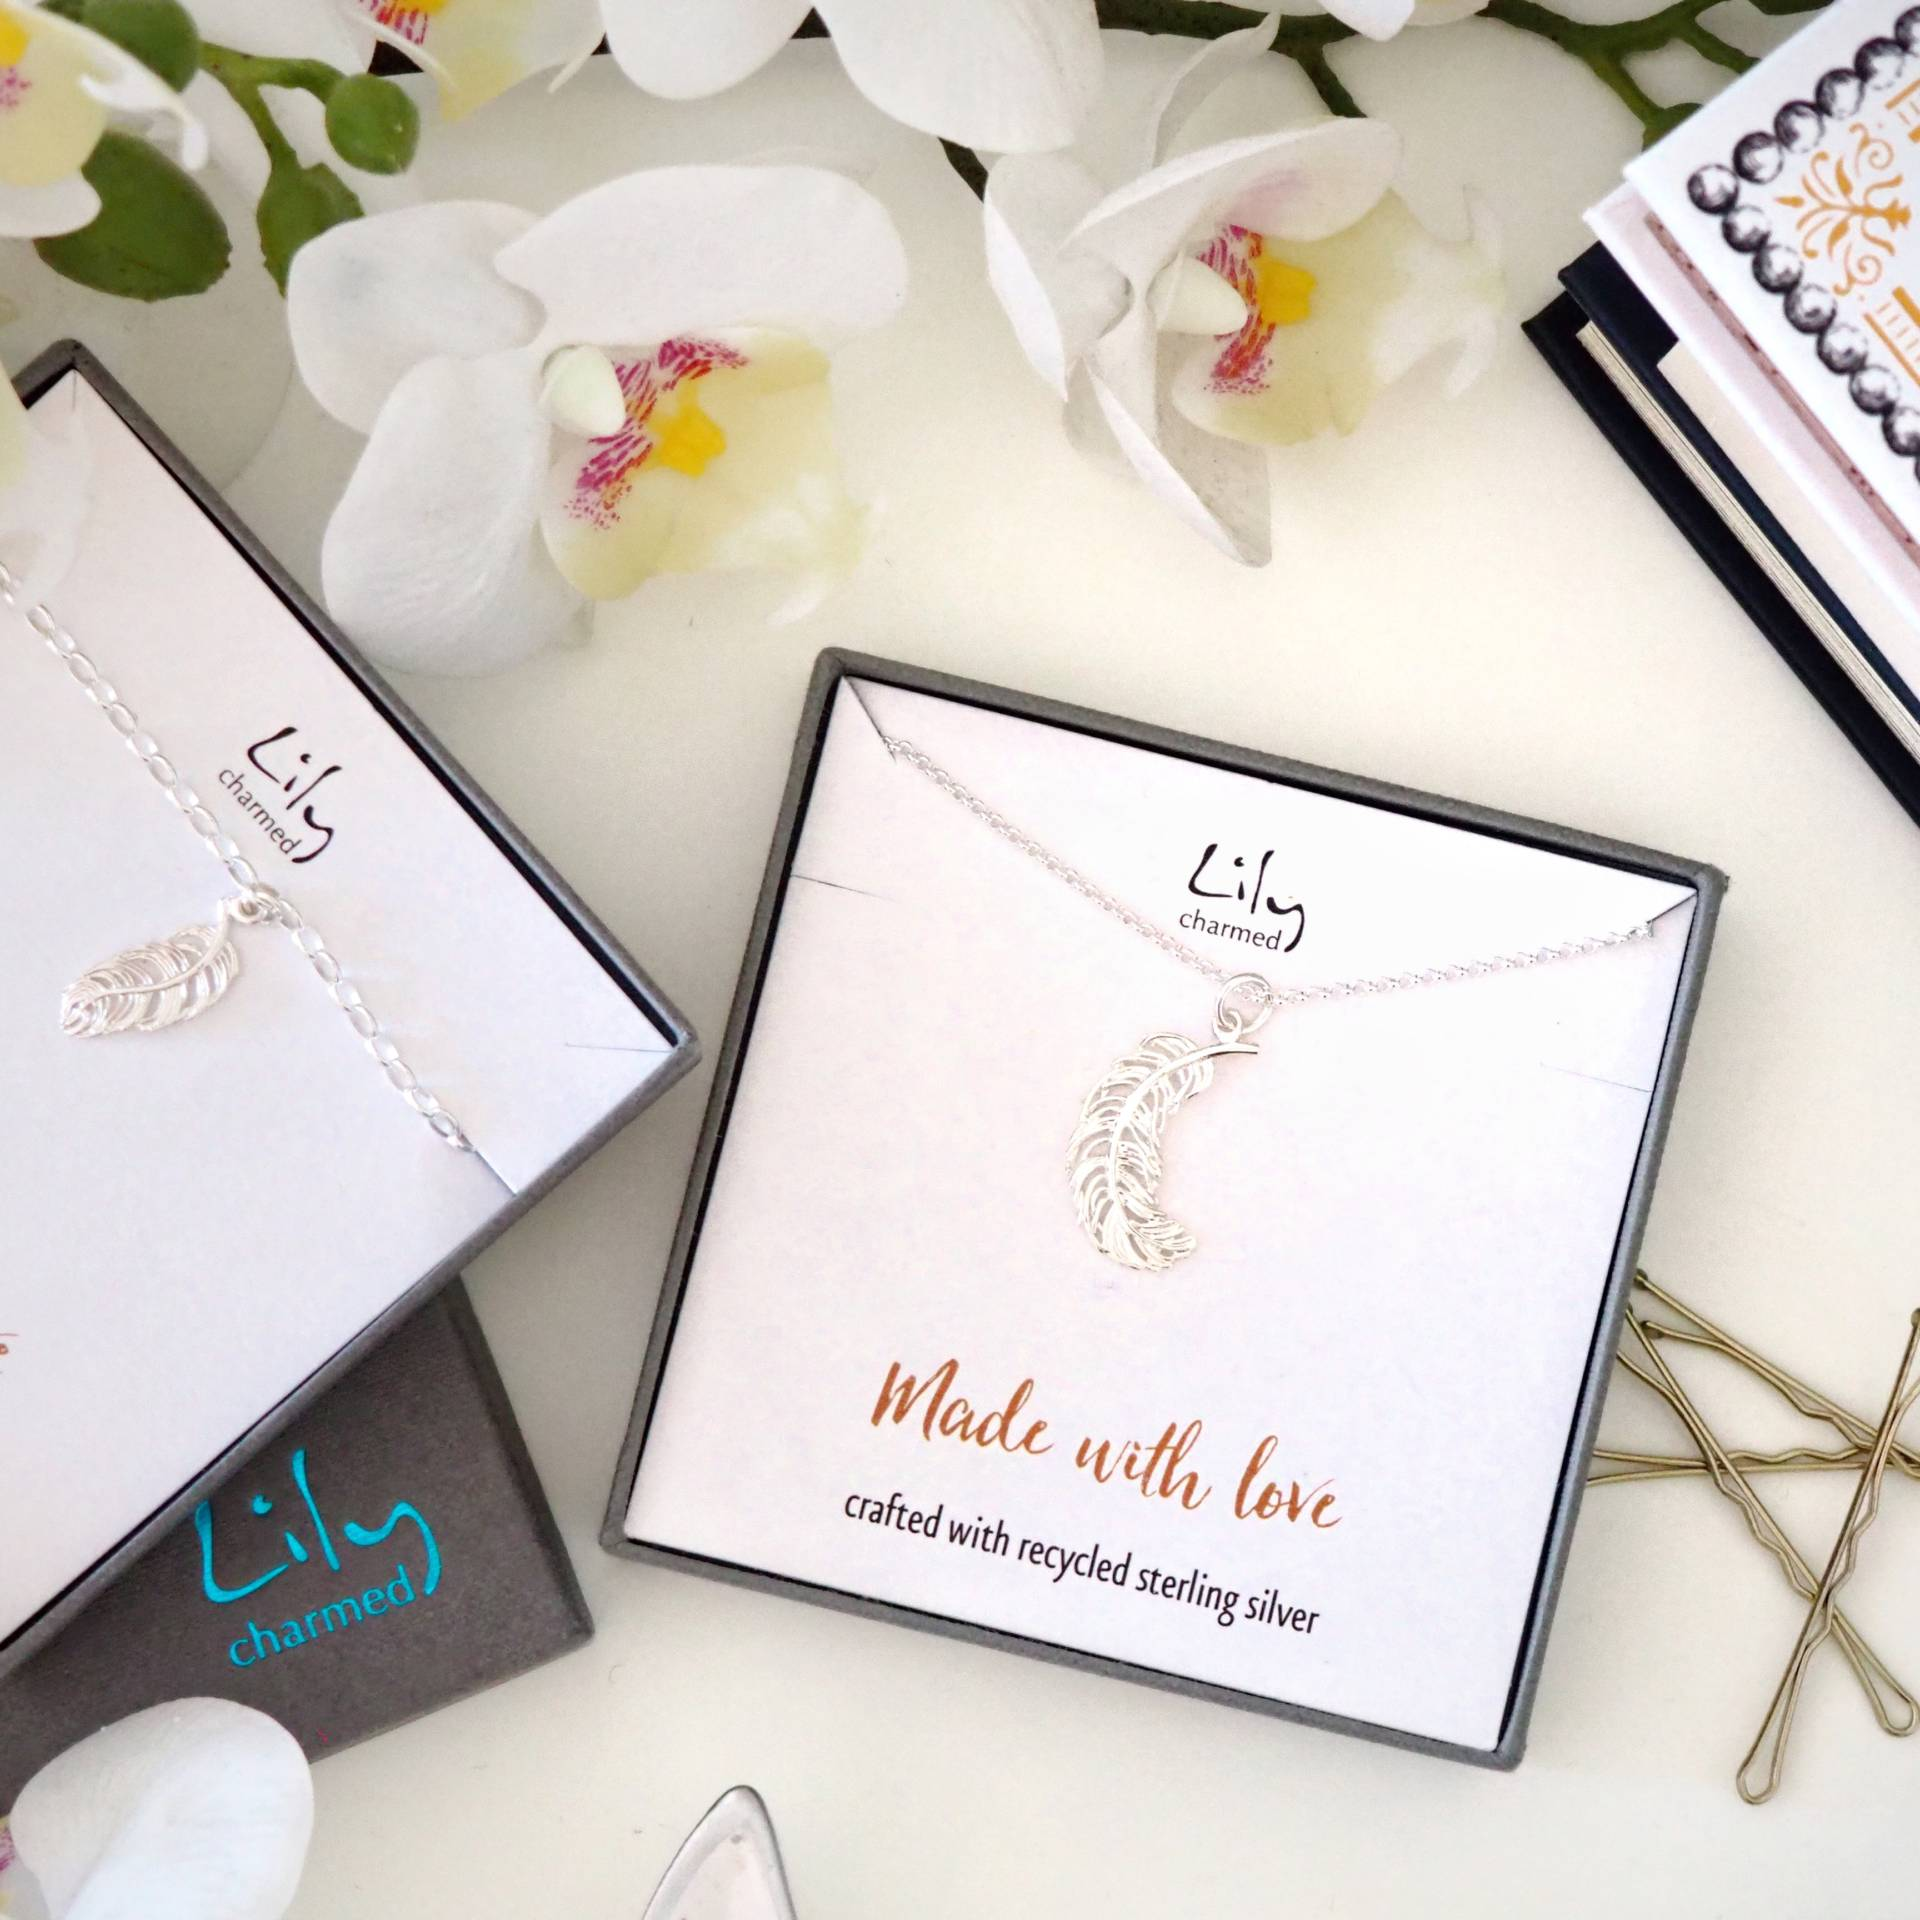 Lily Charmed Jewellery